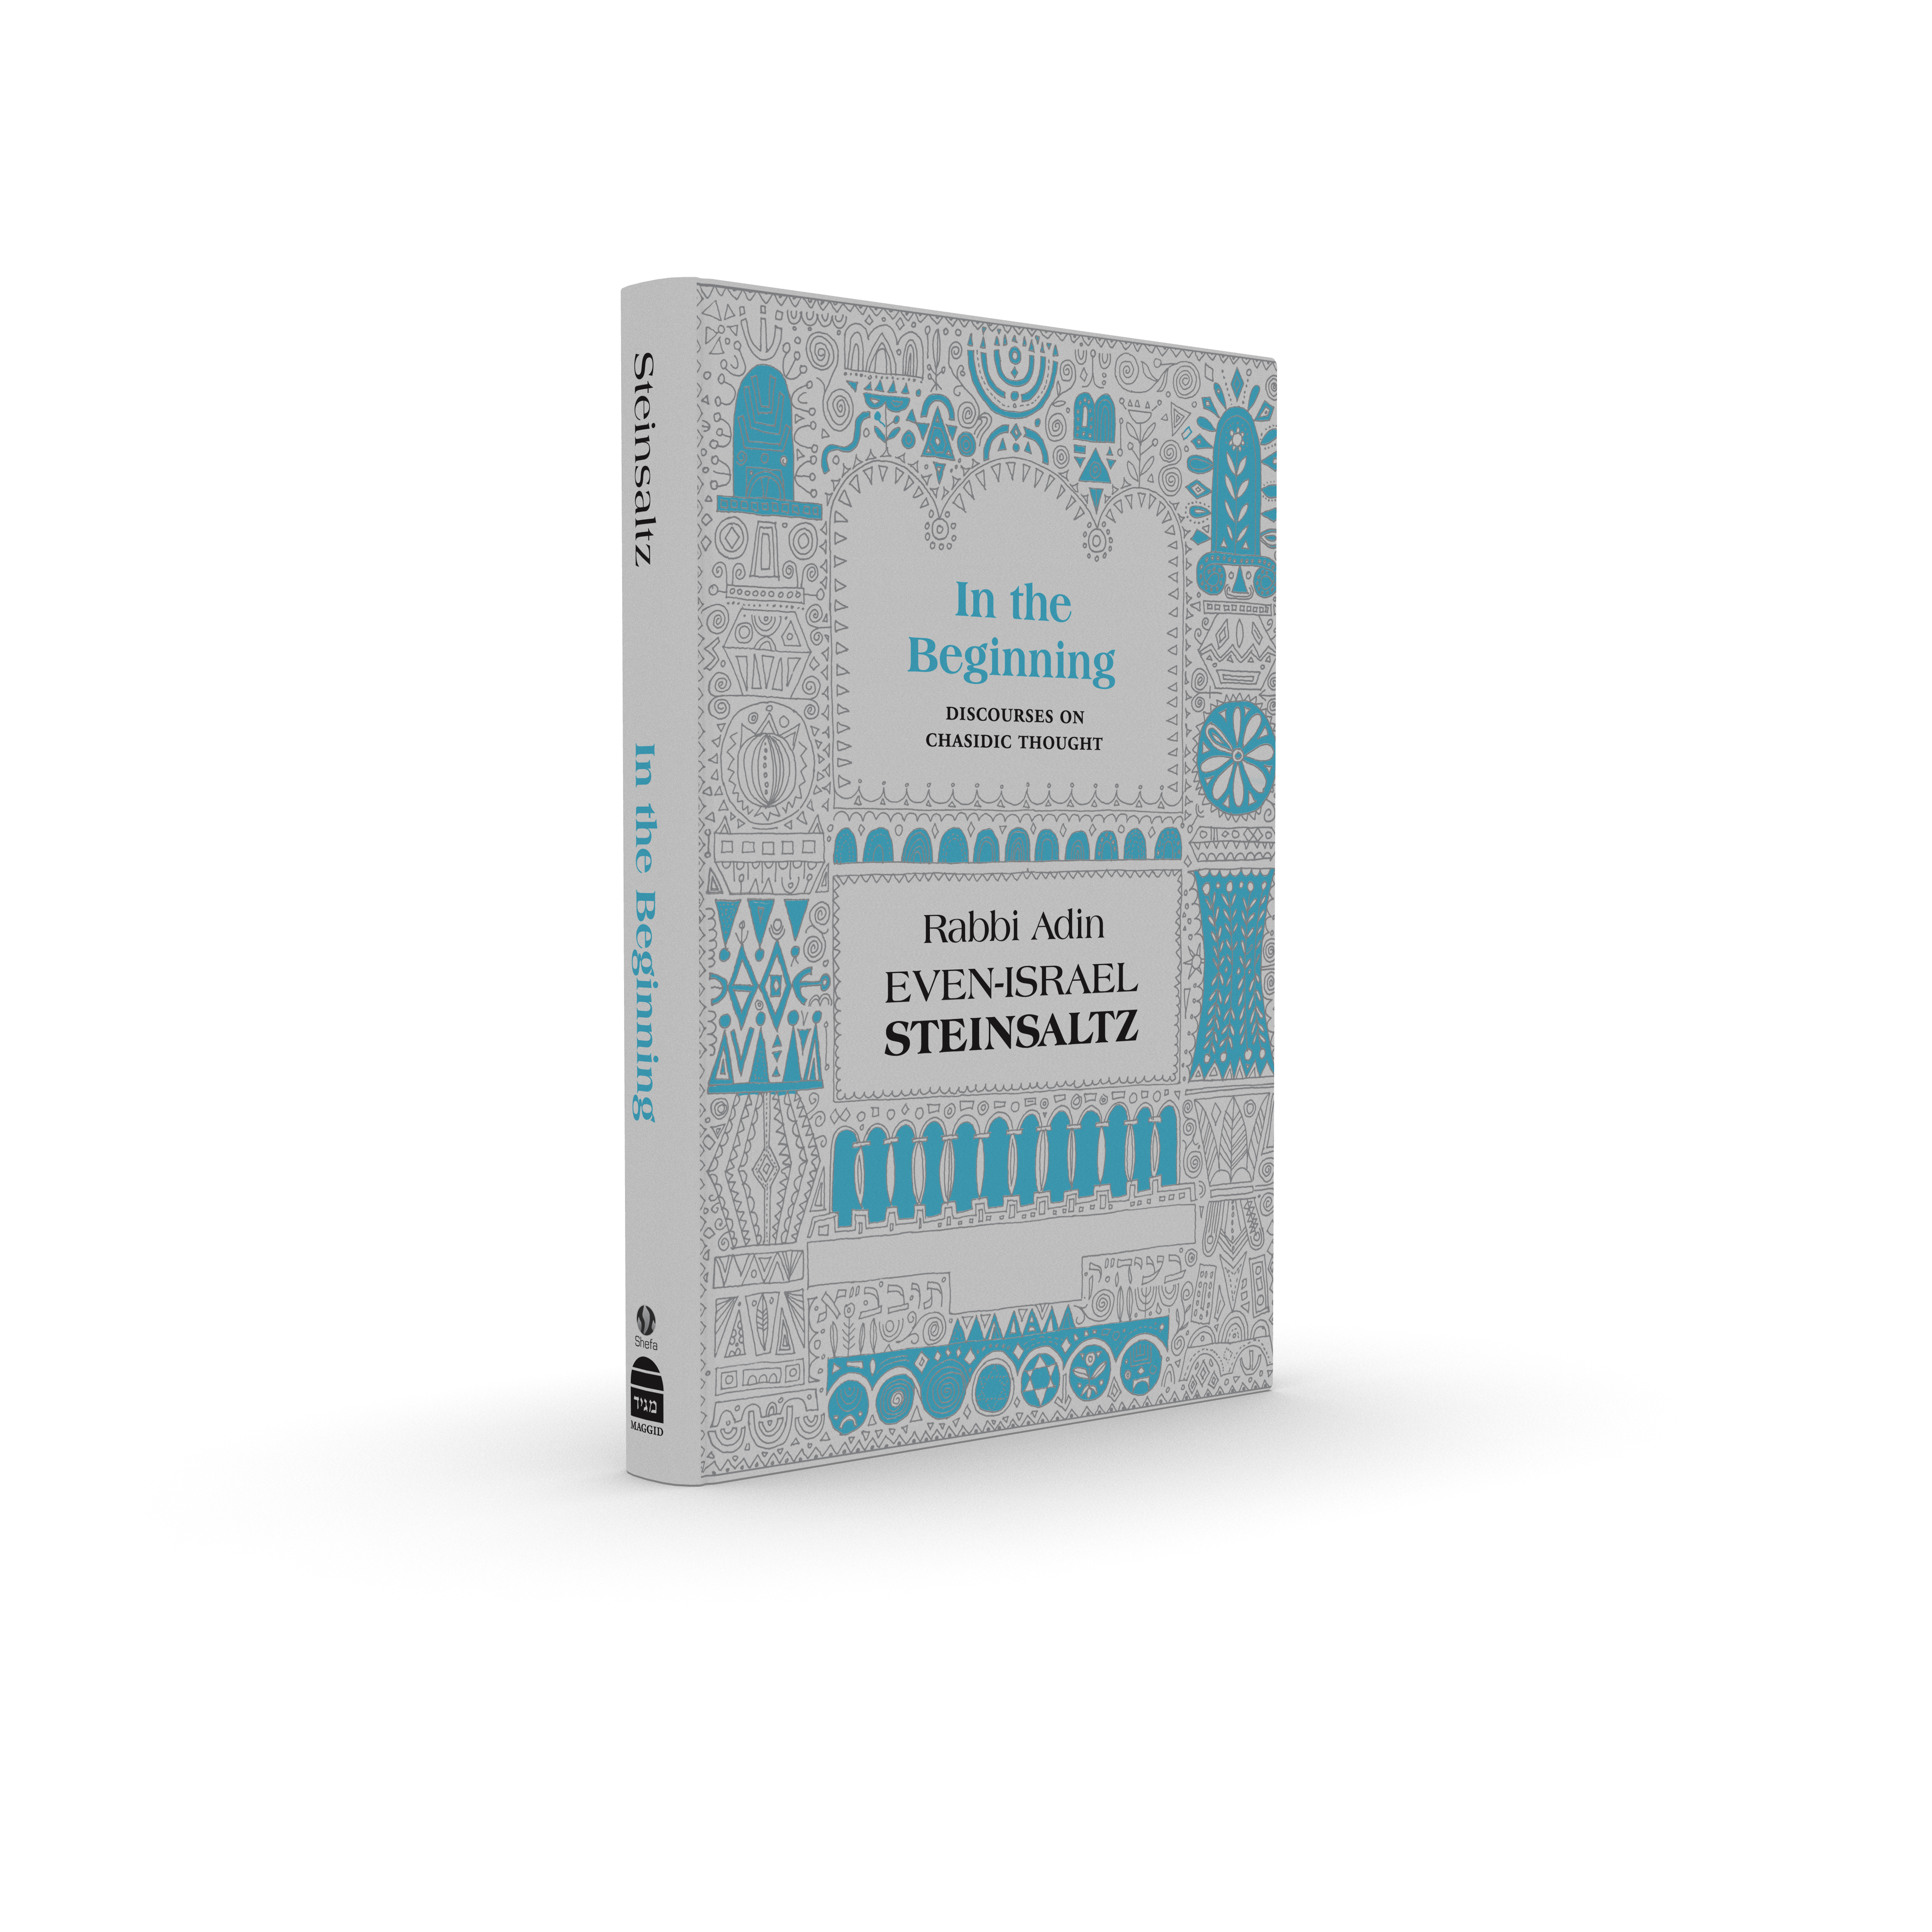 Turquoise book spine png. Maggid in the beginning